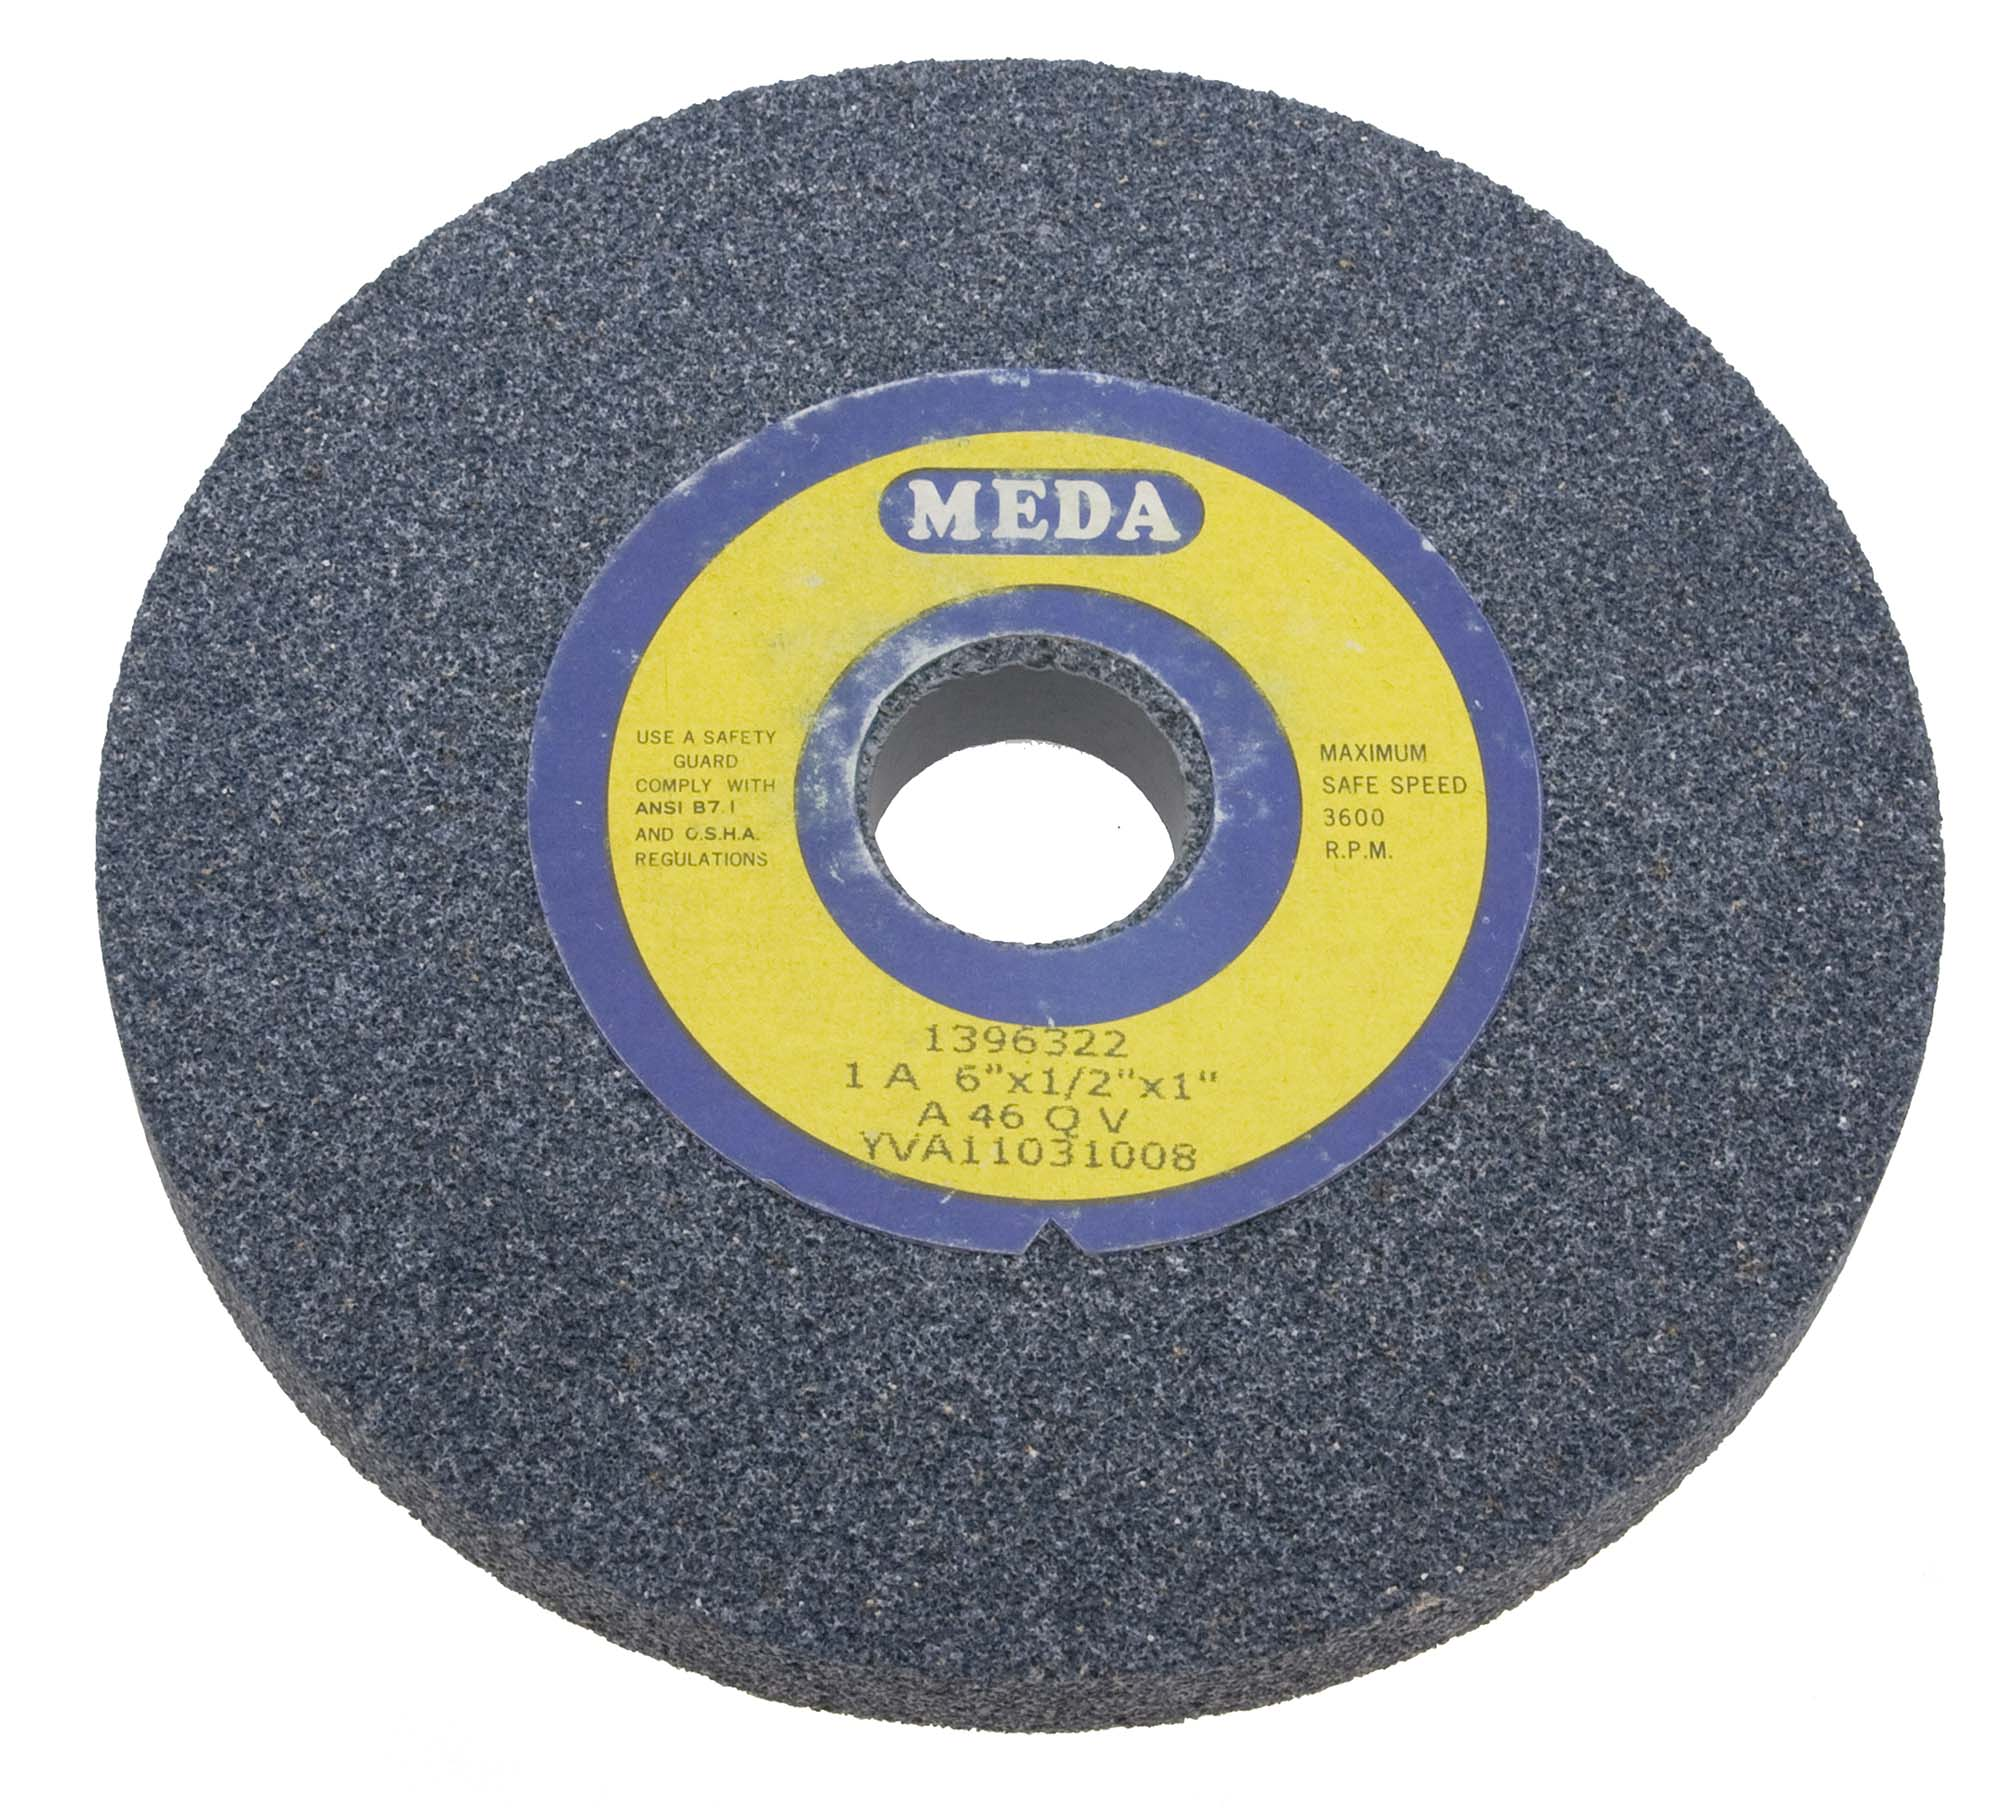 Meda 12 X 2 X 1-1/4 Coarse 24 Grit Grey Bench Grinding Wheel